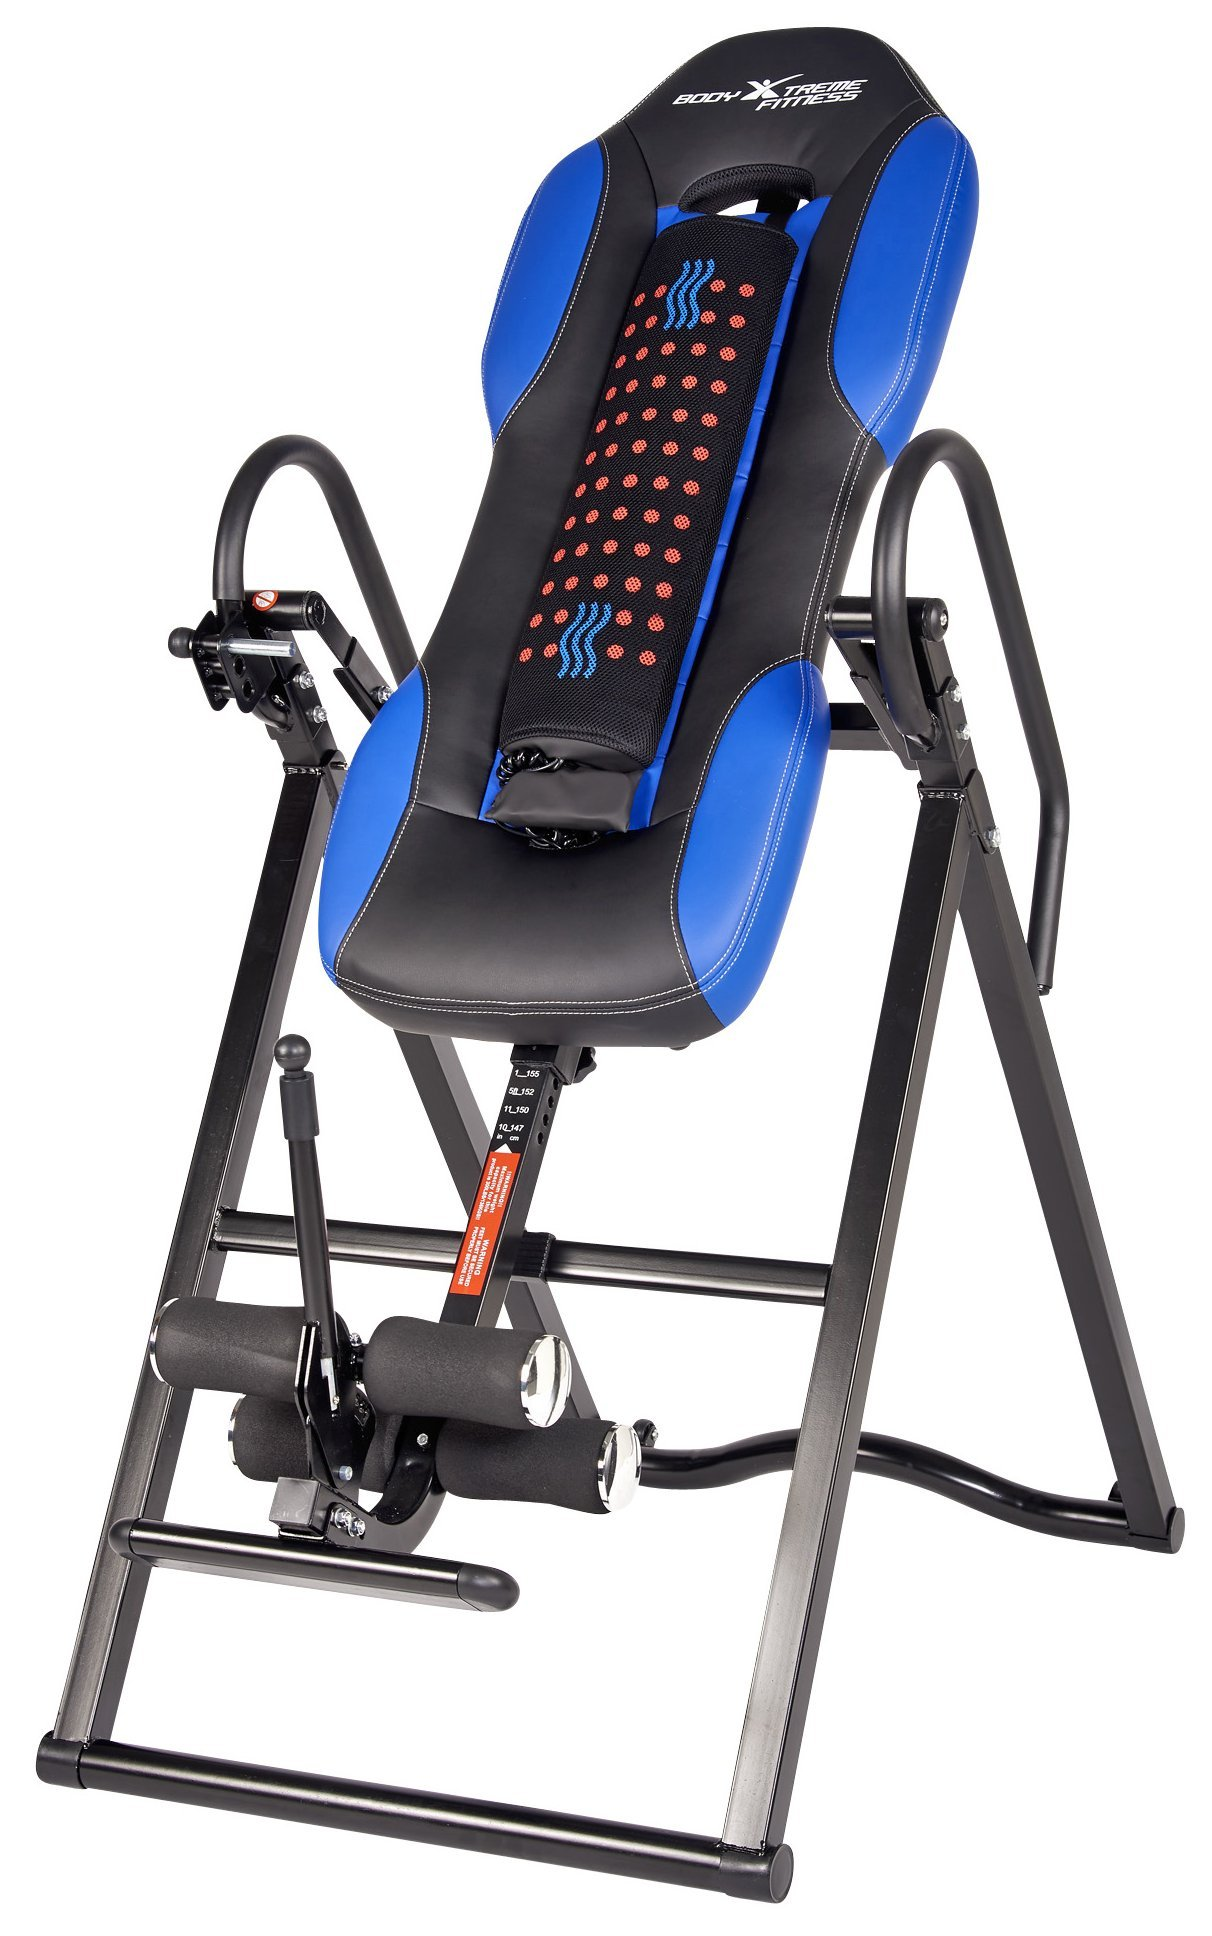 Body Xtreme Fitness ~ Inversion Table, Advanced Heat and Massage Therapeutic Inversion Table, Comfort Foam Backrest, Back Fitness Therapy Relief + BONUS Cooling Towel by Body Xtreme Fitness USA (Image #2)